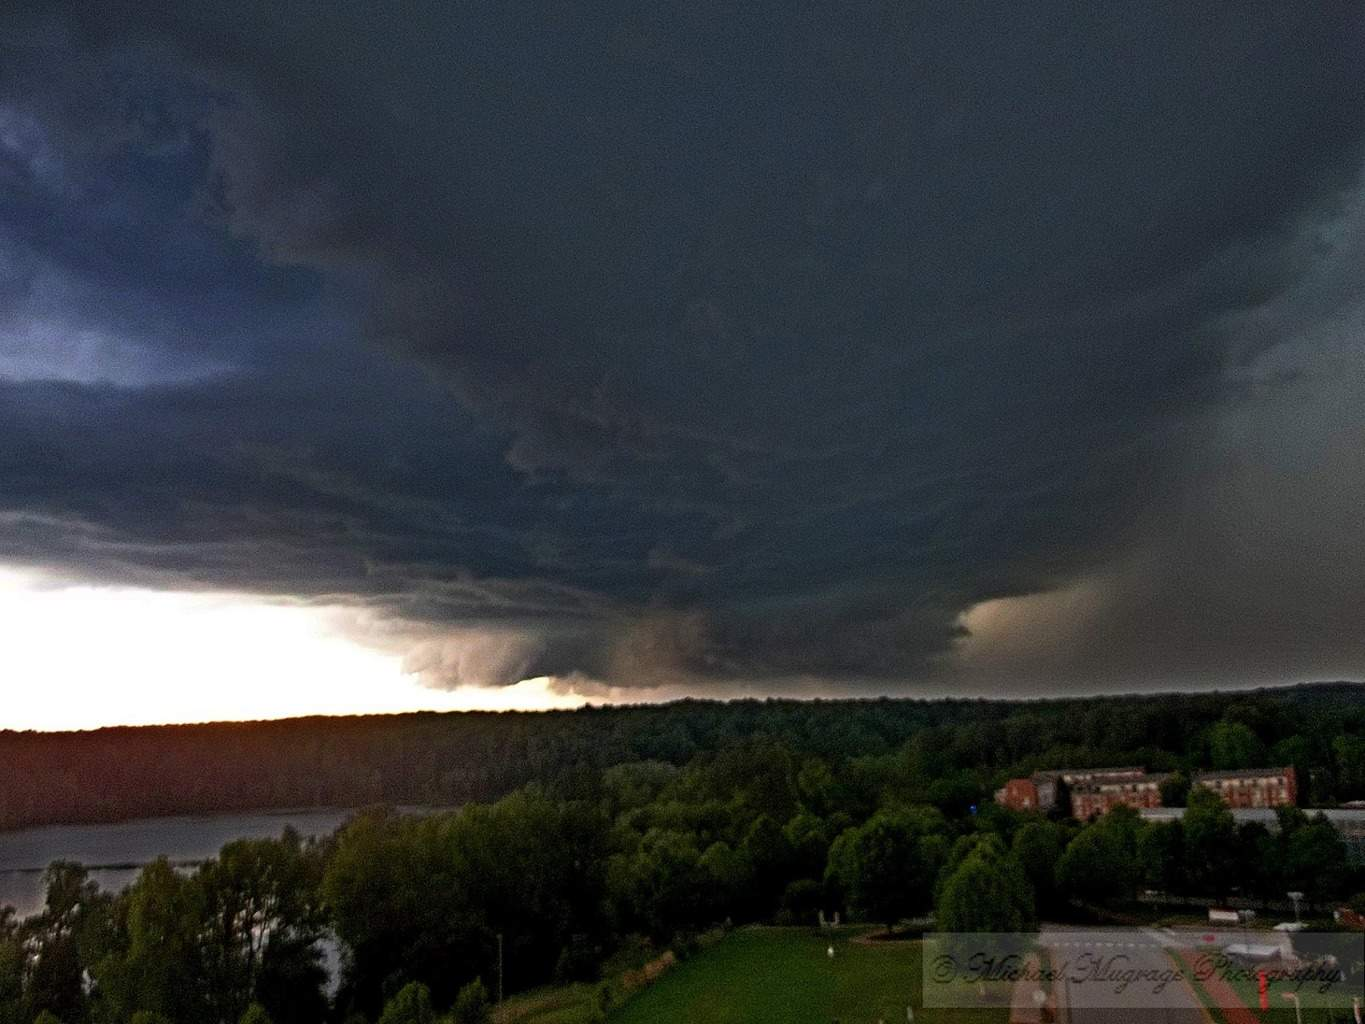 "Raleigh, NC supercell thunderstorm on April 28th, 2016. This storm ended up producing 2.00"" diameter hail later on in its life along with damaging winds. This was taken on top of James B Hunt Library at NC State University. One of the best supercell structures I had seen on a storm in NC."